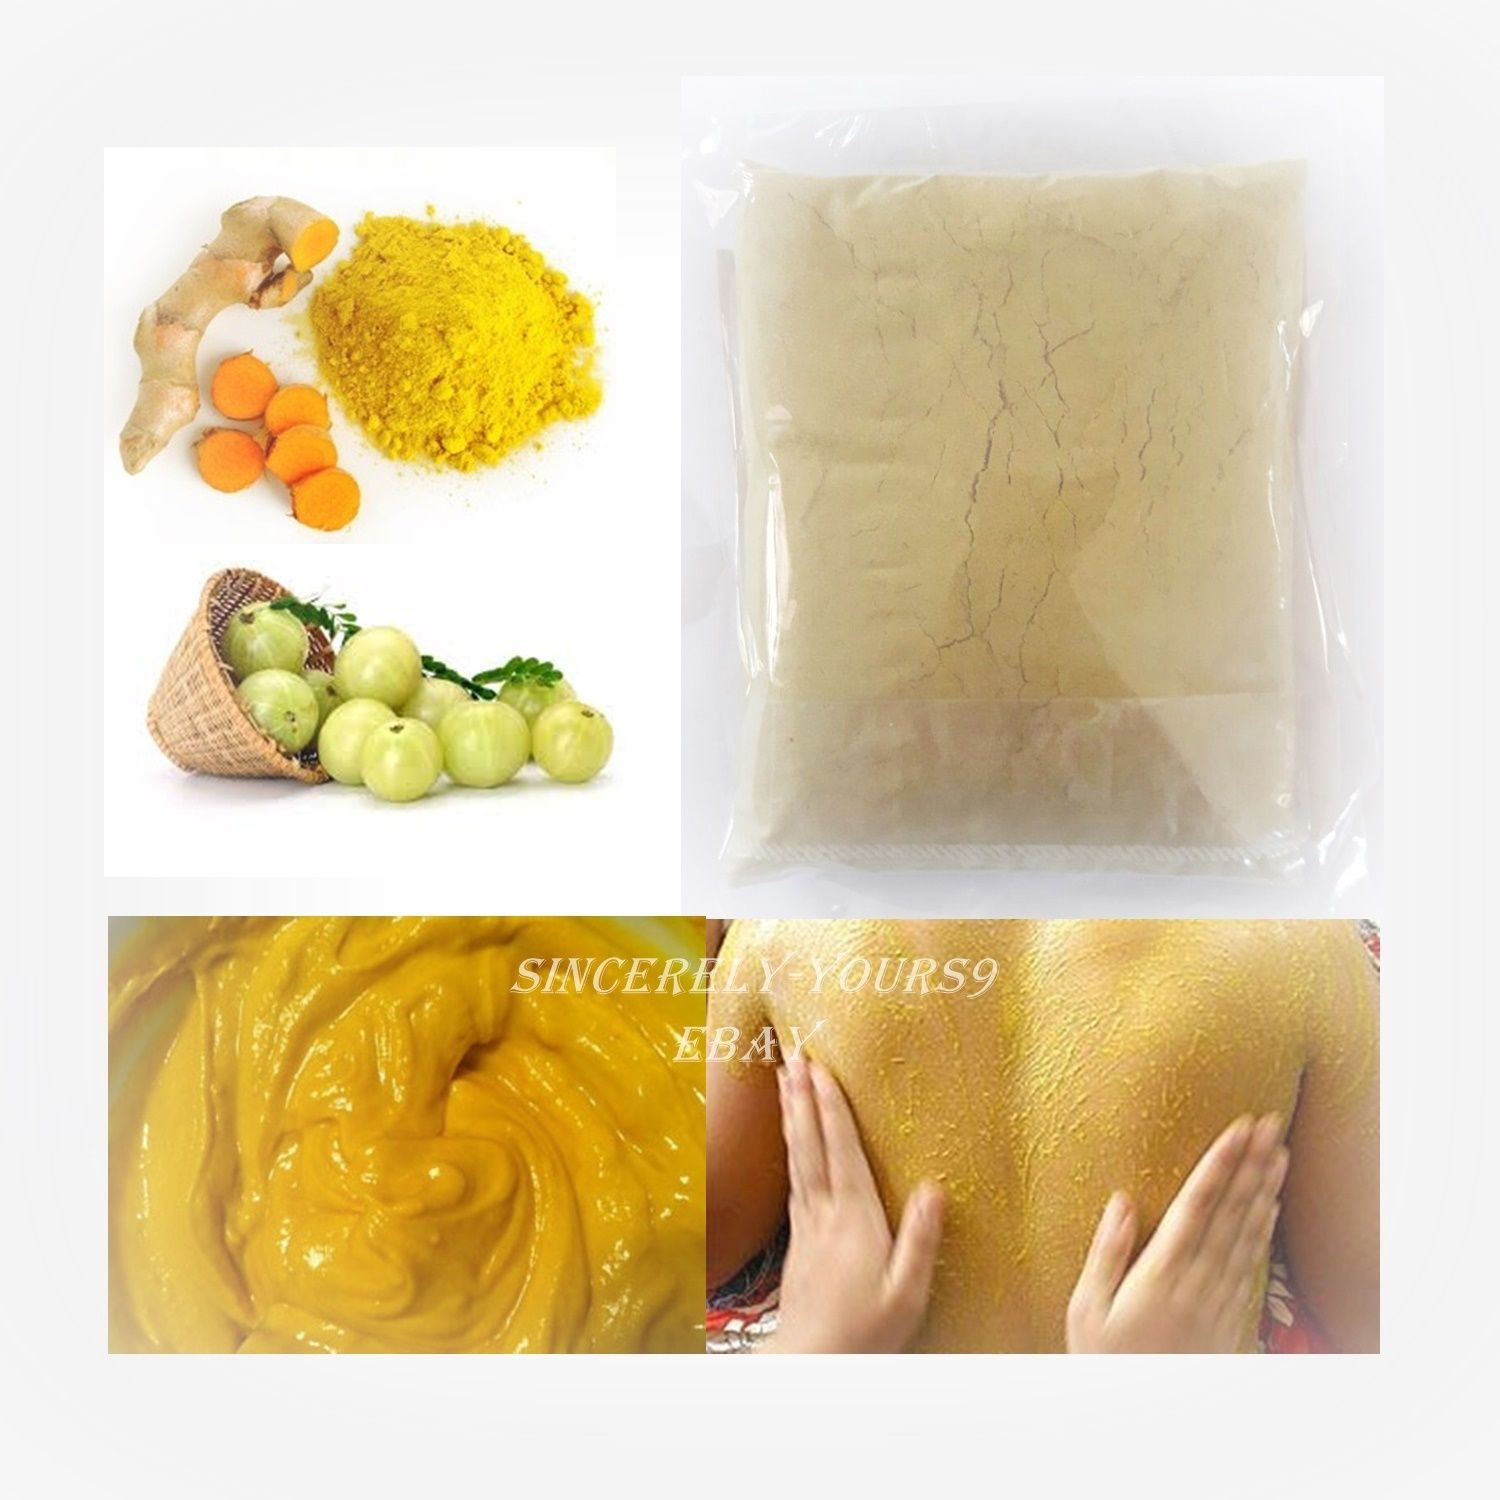 Top 10 Most Popular Curcumin Manufacturer In India Ideas And Get